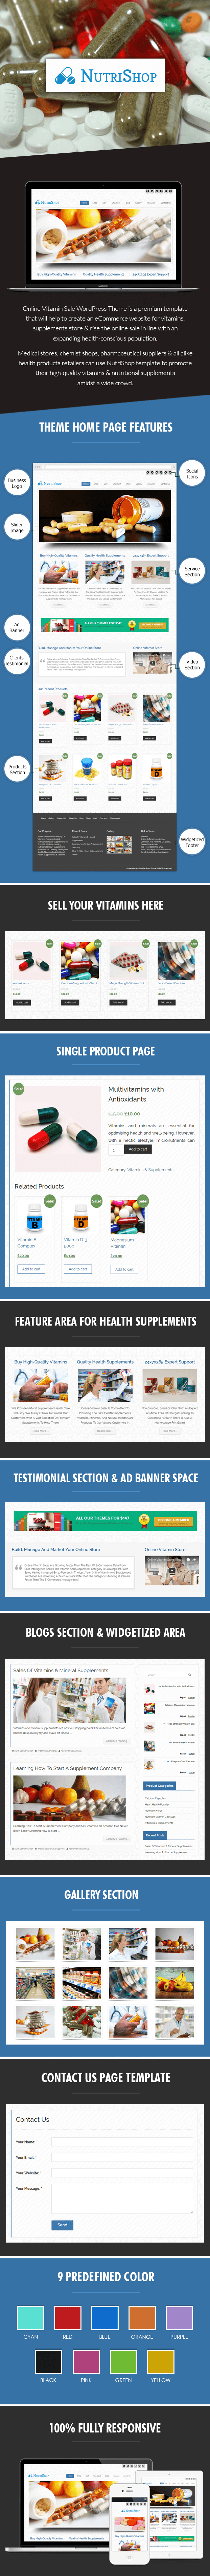 Online Vitamin Sale WordPress Theme